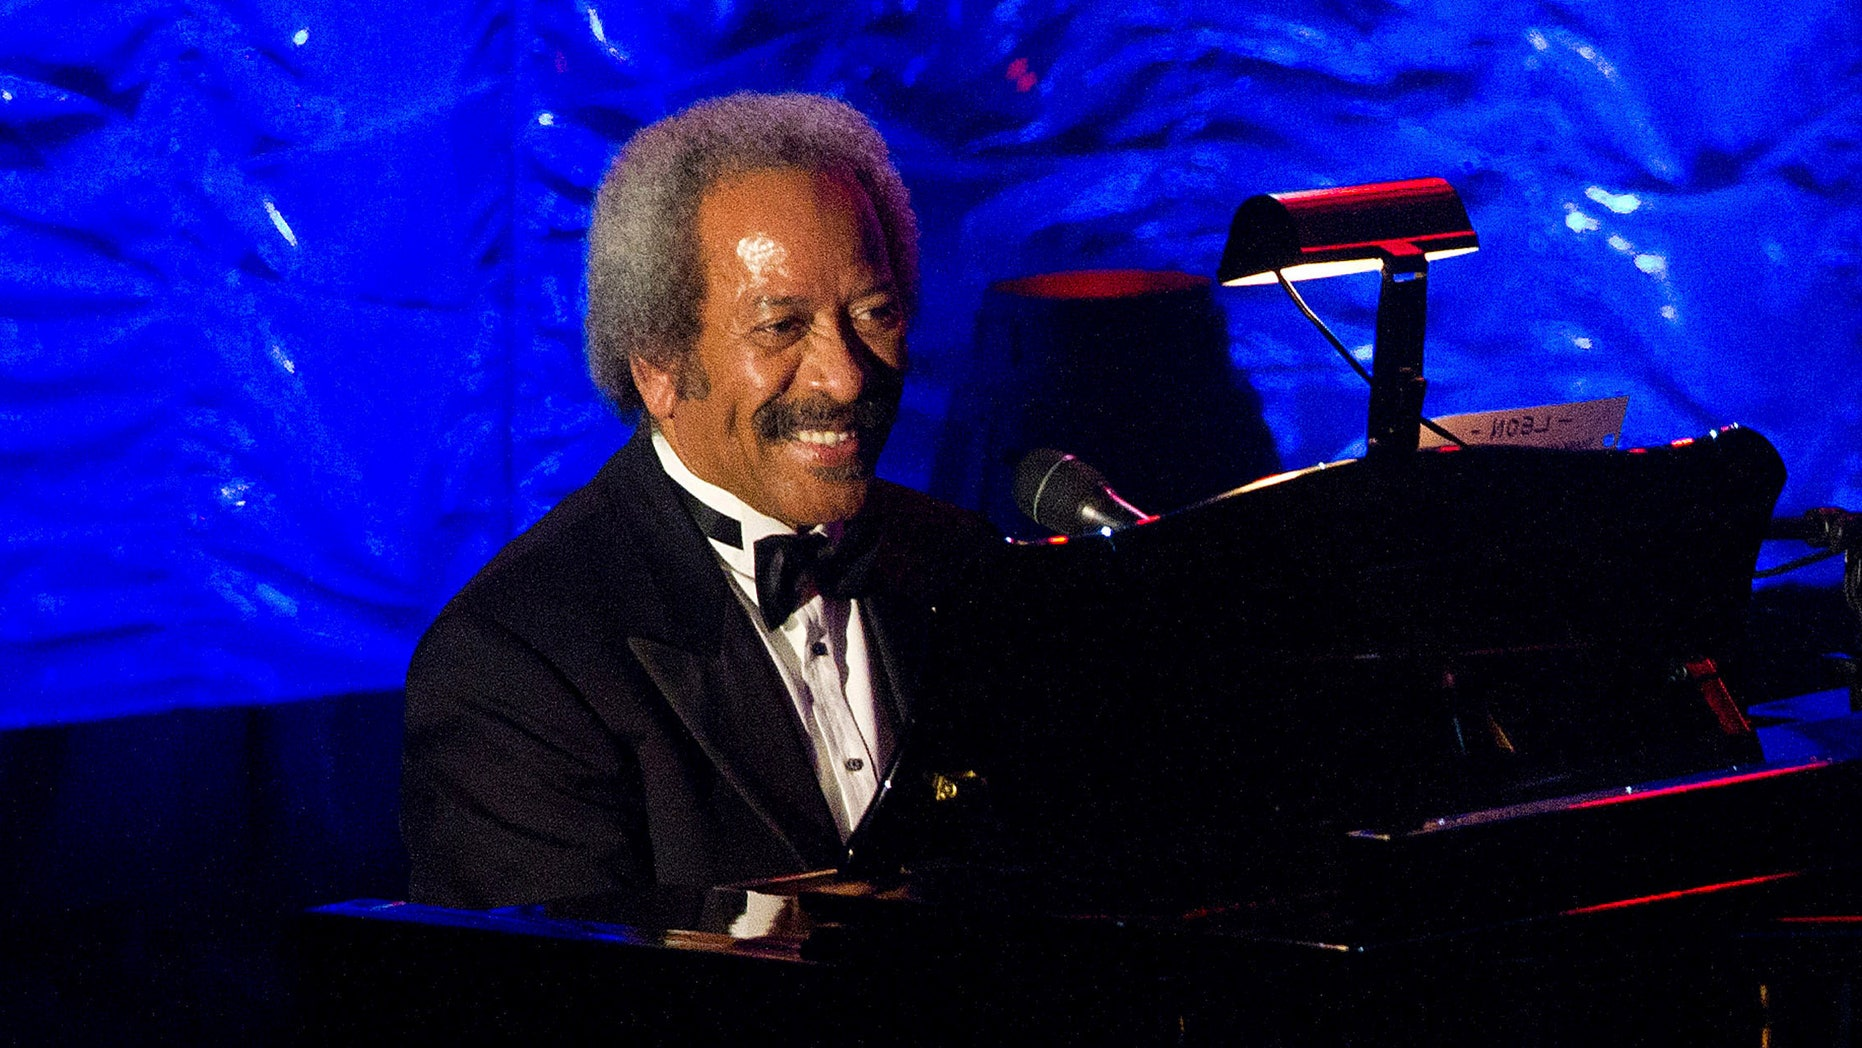 FILE - In this June 16, 2011 file photo, Allen Toussaint performs onstage at the 42nd Annual Songwriters Hall of Fame Awards in New York. Legendary New Orleans musician and composer Allen Toussaint has died after suffering a heart attack following a concert he performed in the Spanish capital. Madrid emergency services spokesman Javier Ayuso says rescue workers were called to Toussaint's hotel early Monday Nov. 9, 2015 and managed to revive him after he suffered a heart attack but he stopped breathing during the ambulance ride to a hospital and efforts to revive him again were unsuccessful. Toussaint performed Sunday night at Madrid's Lara Theater. (AP Photo/Charles Sykes, File)